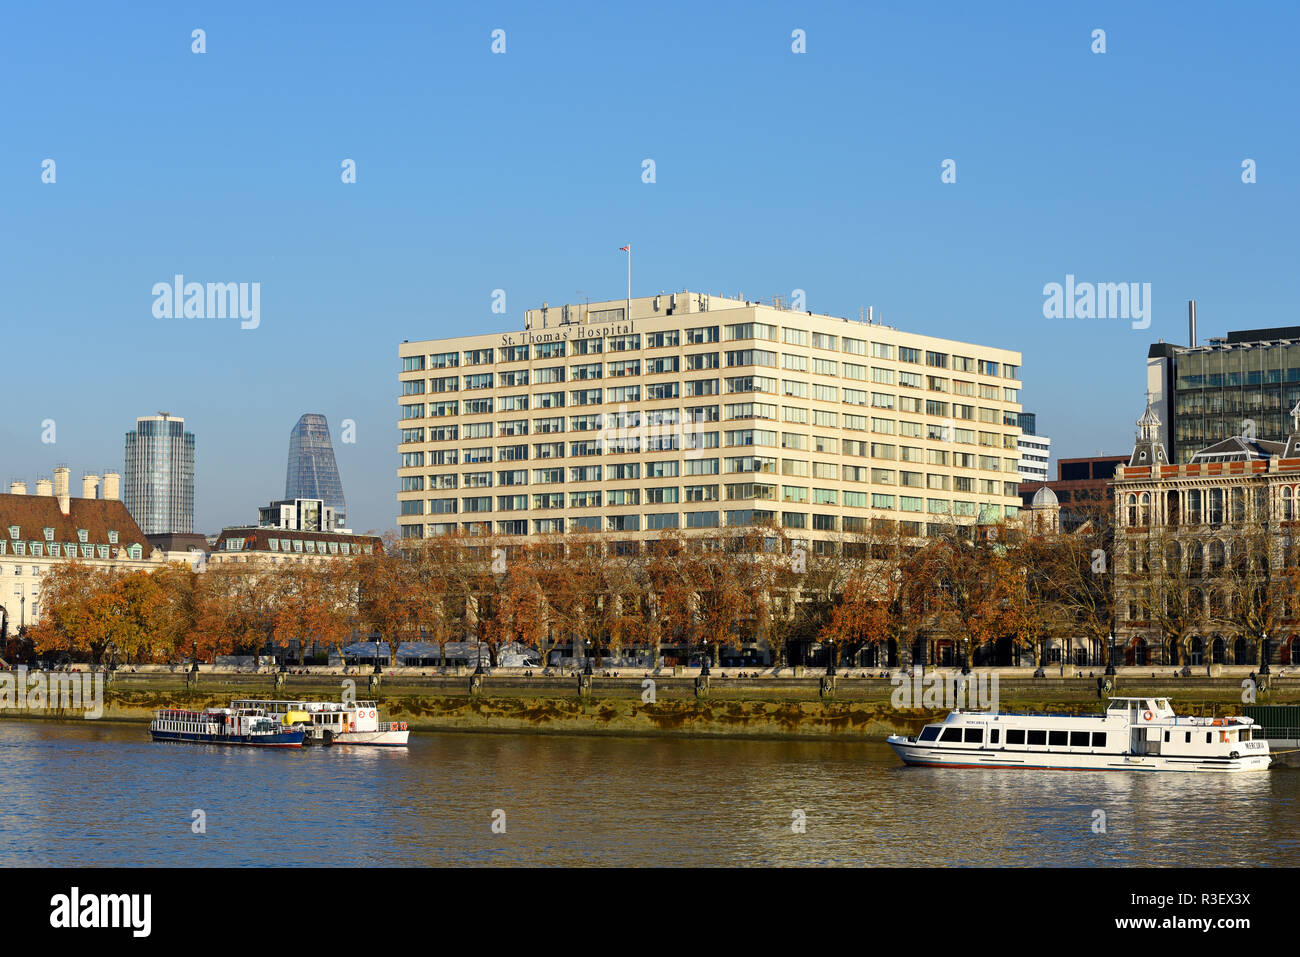 St Thomas' Hospital, Westminster Bridge, London, UK. NHS teaching hospital in Central London. Guy's and St Thomas' NHS Foundation Trust Space for copy - Stock Image